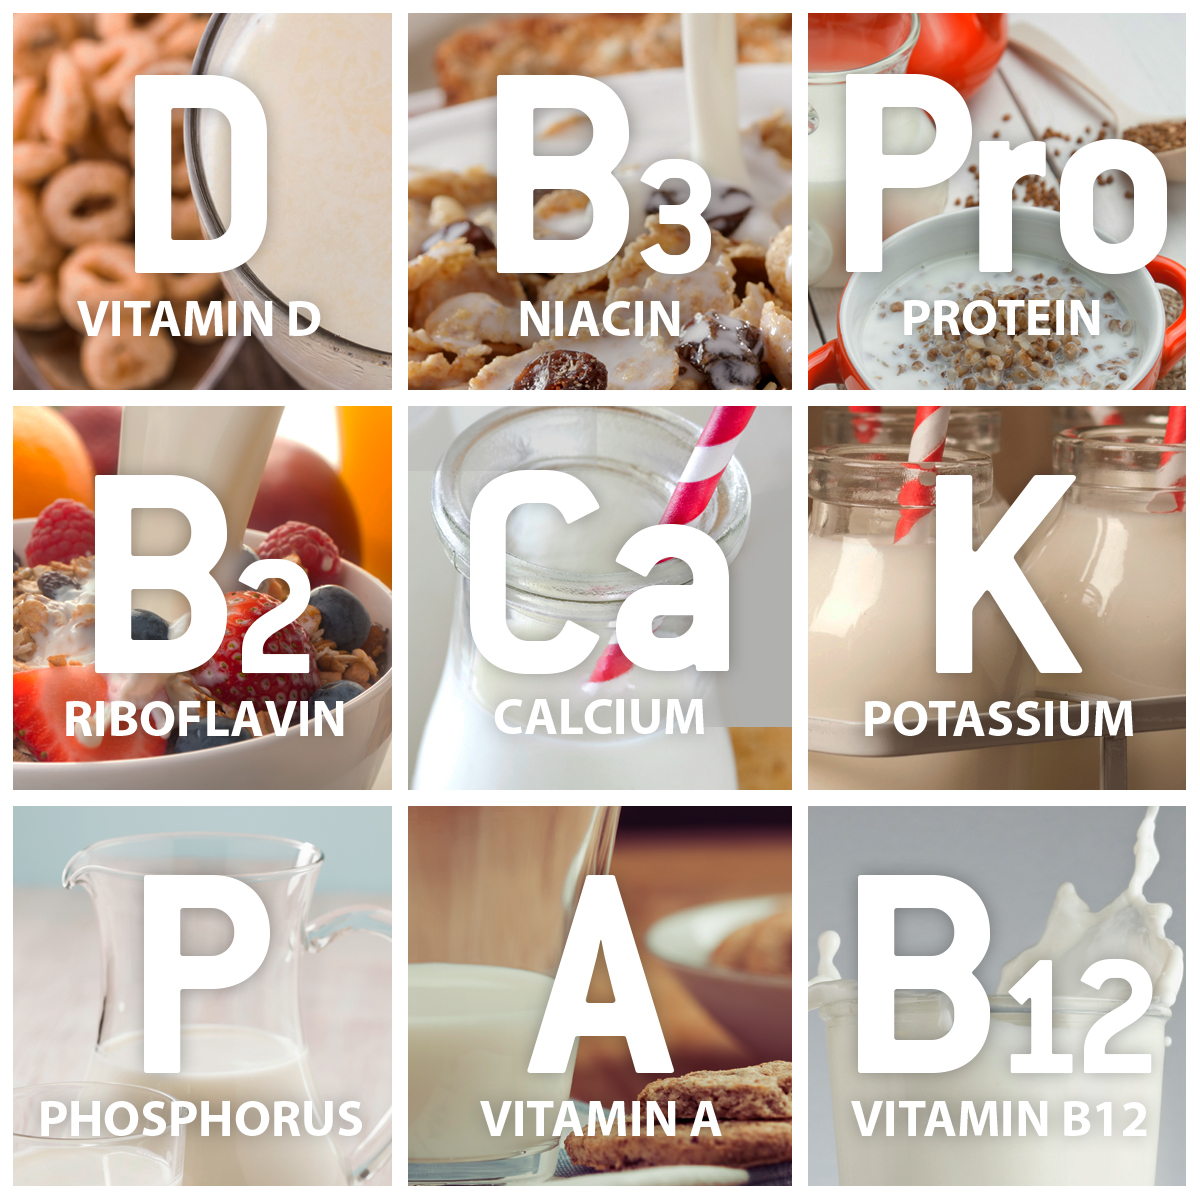 Nutrients in milk include Protein, Calcium, Potassium, vitamin D, vitamin A, vitamin B12, Riboflavin, Phosphorus and Niacin.